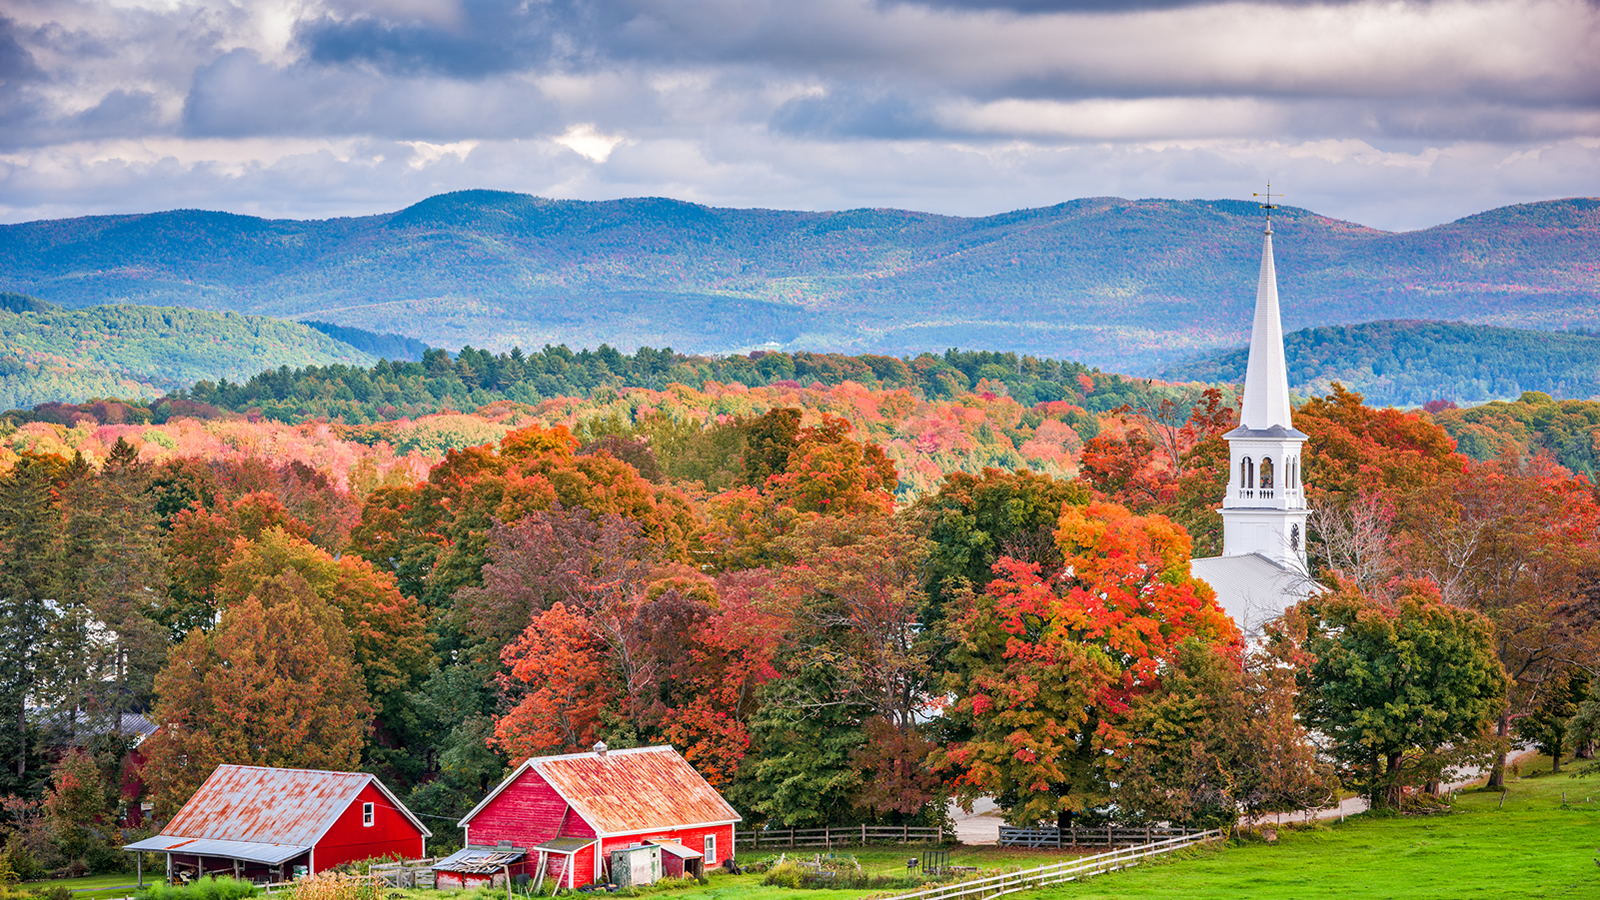 White Church Steeple and Red Barns amongst Fall Foliage in Vermont